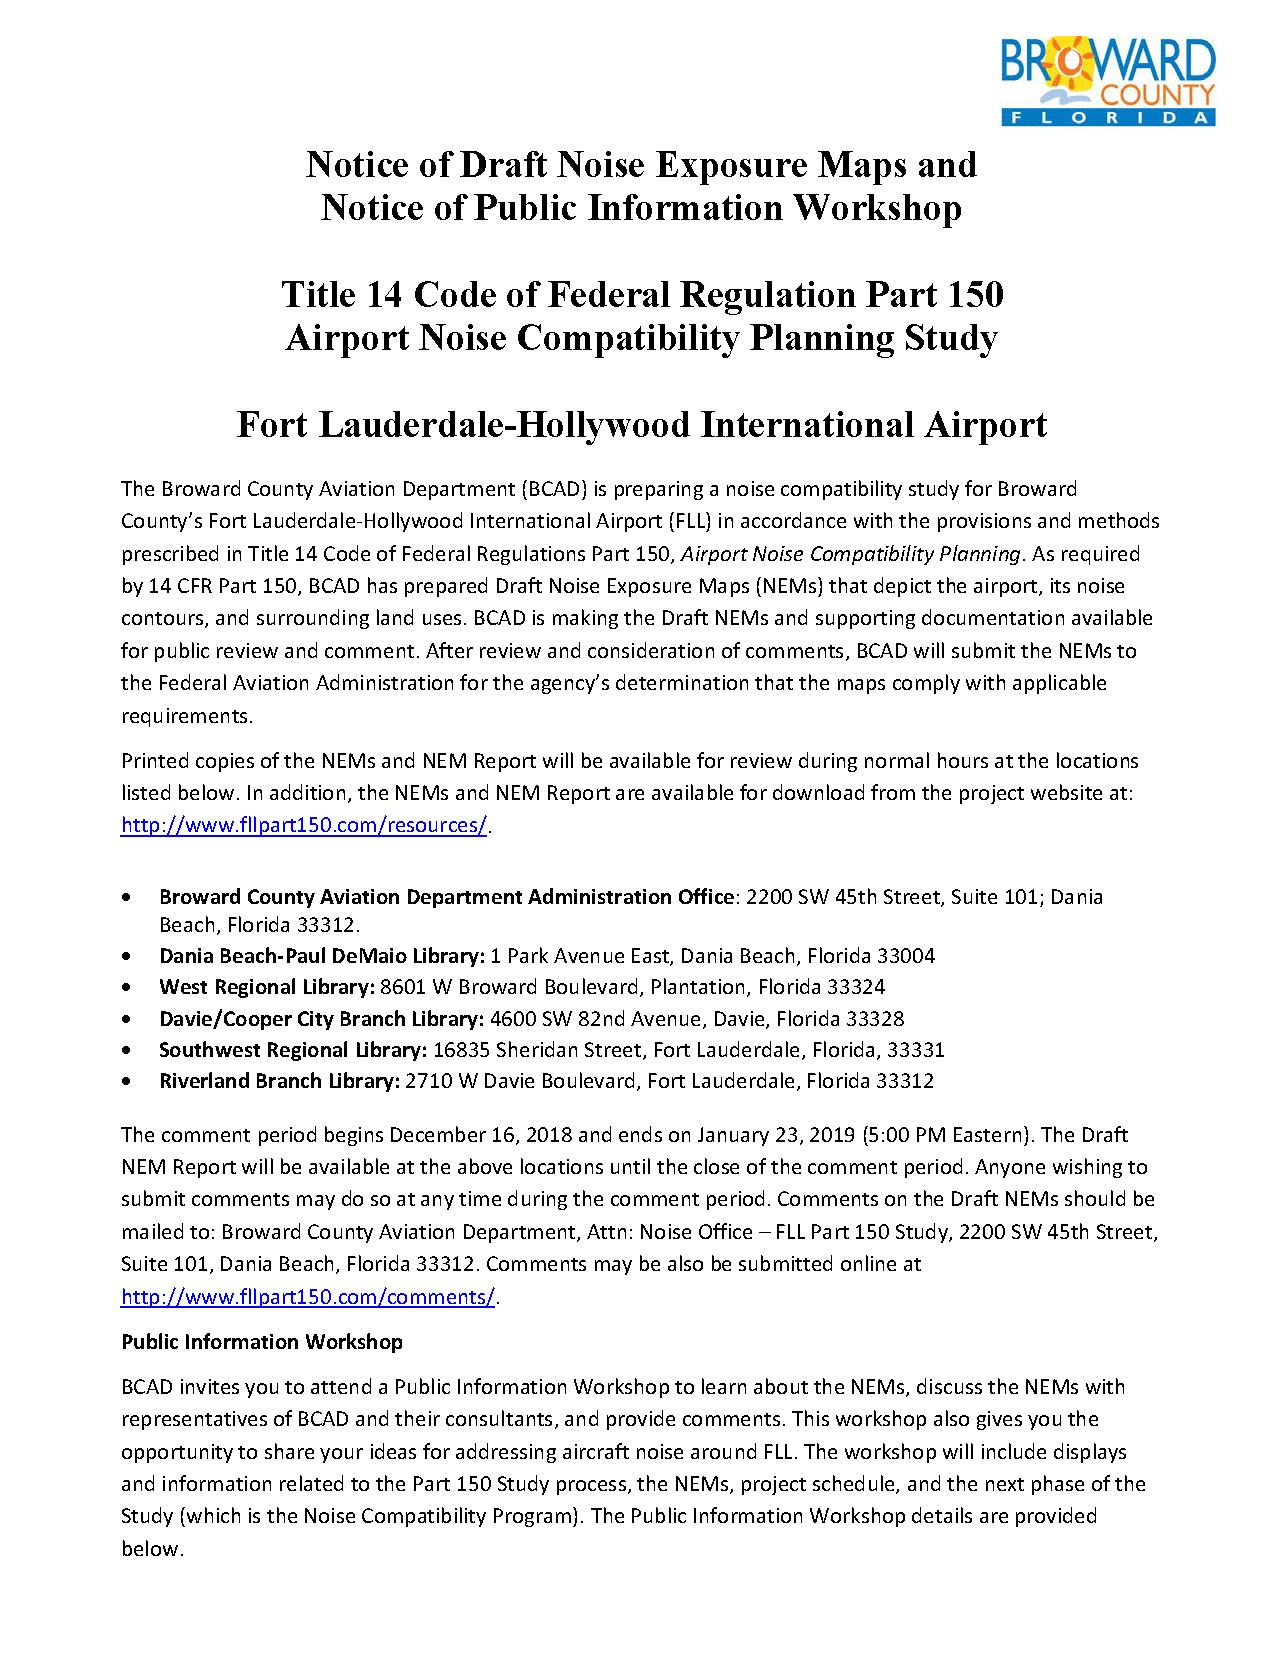 FLL P150 Pub Wkshp Announcement